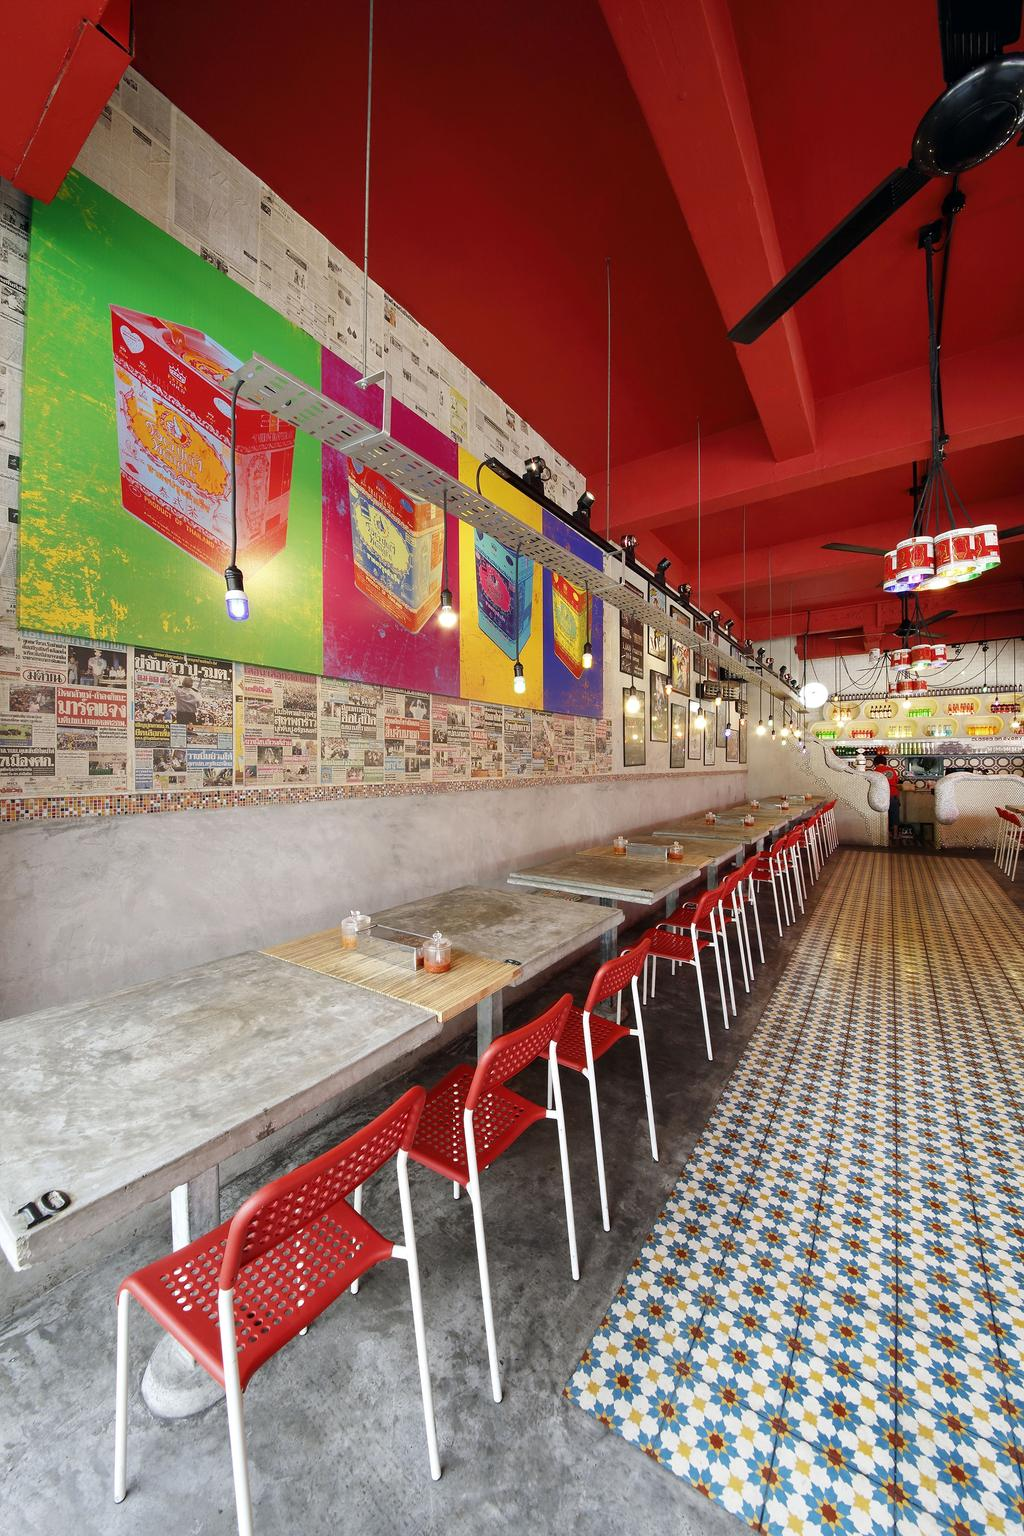 Tom Yum Kung Fu - Serangoon Garden, Commercial, Interior Designer, Free Space Intent, Vintage, Wall Art, Painting, Mosaic Tiles, Dining Table, Furniture, Table, Diner, Food, Meal, Restaurant